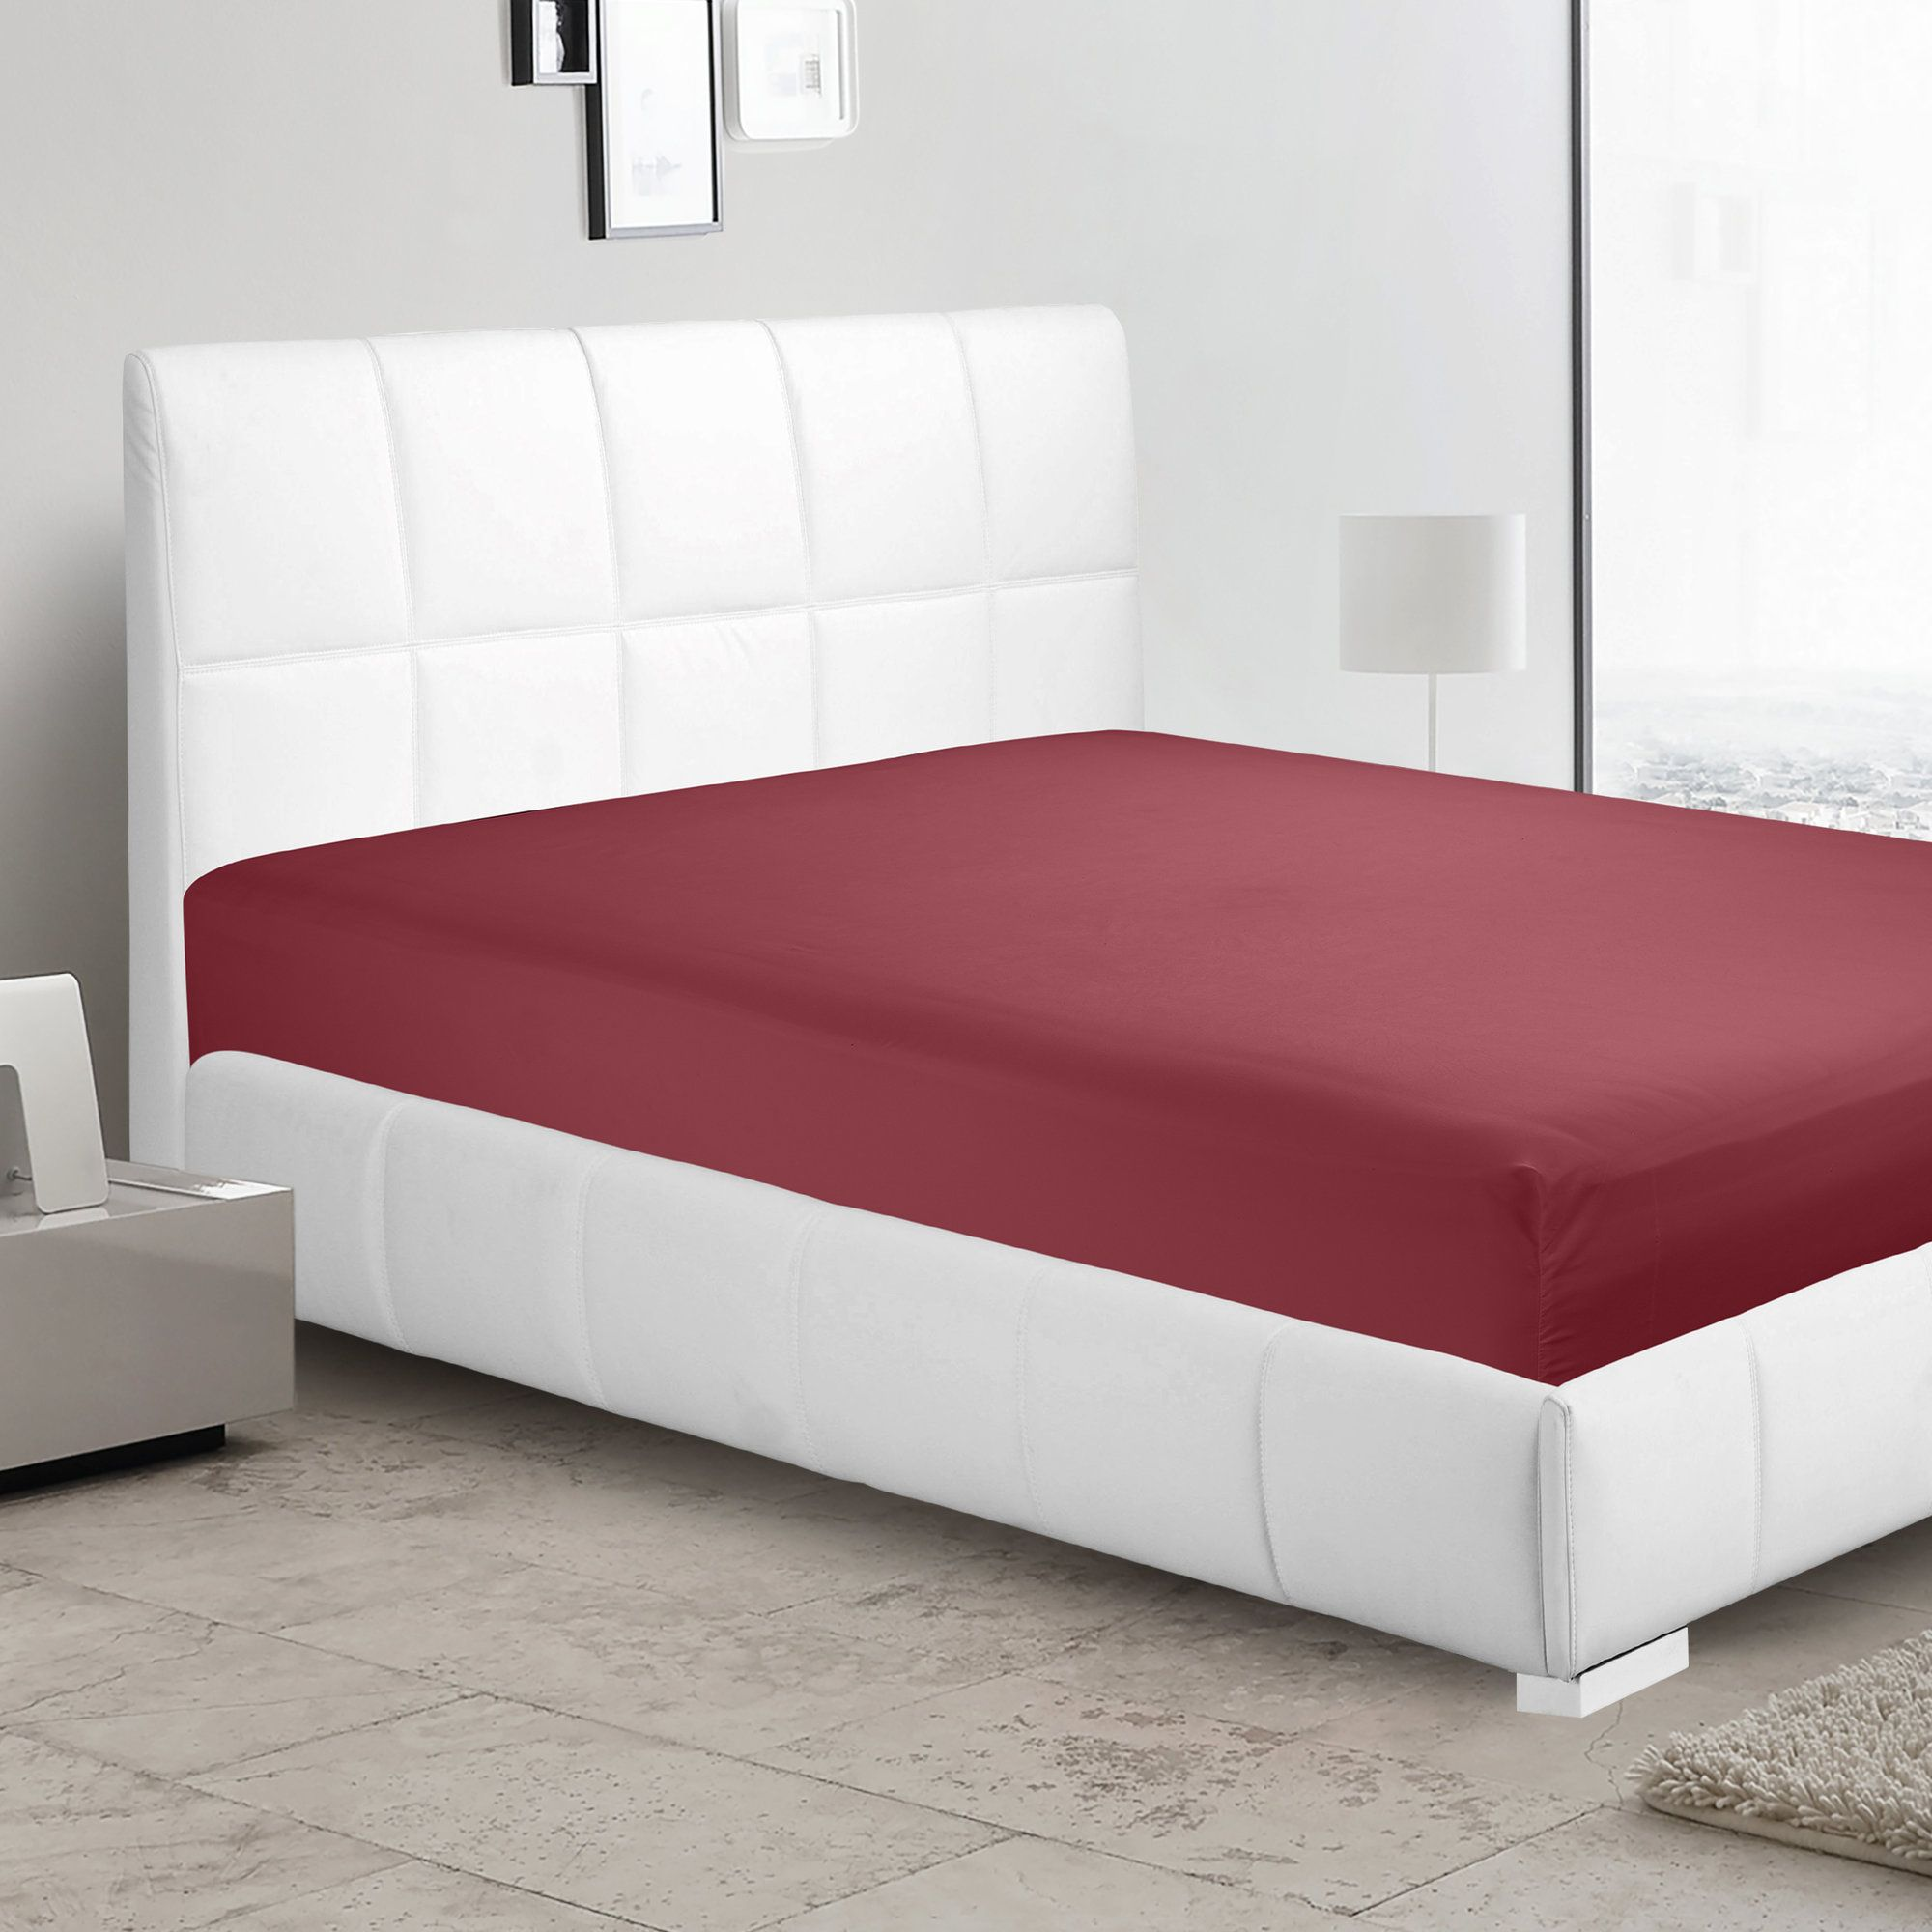 Kershaw Fitted Sheet King bed frame, King size bed frame